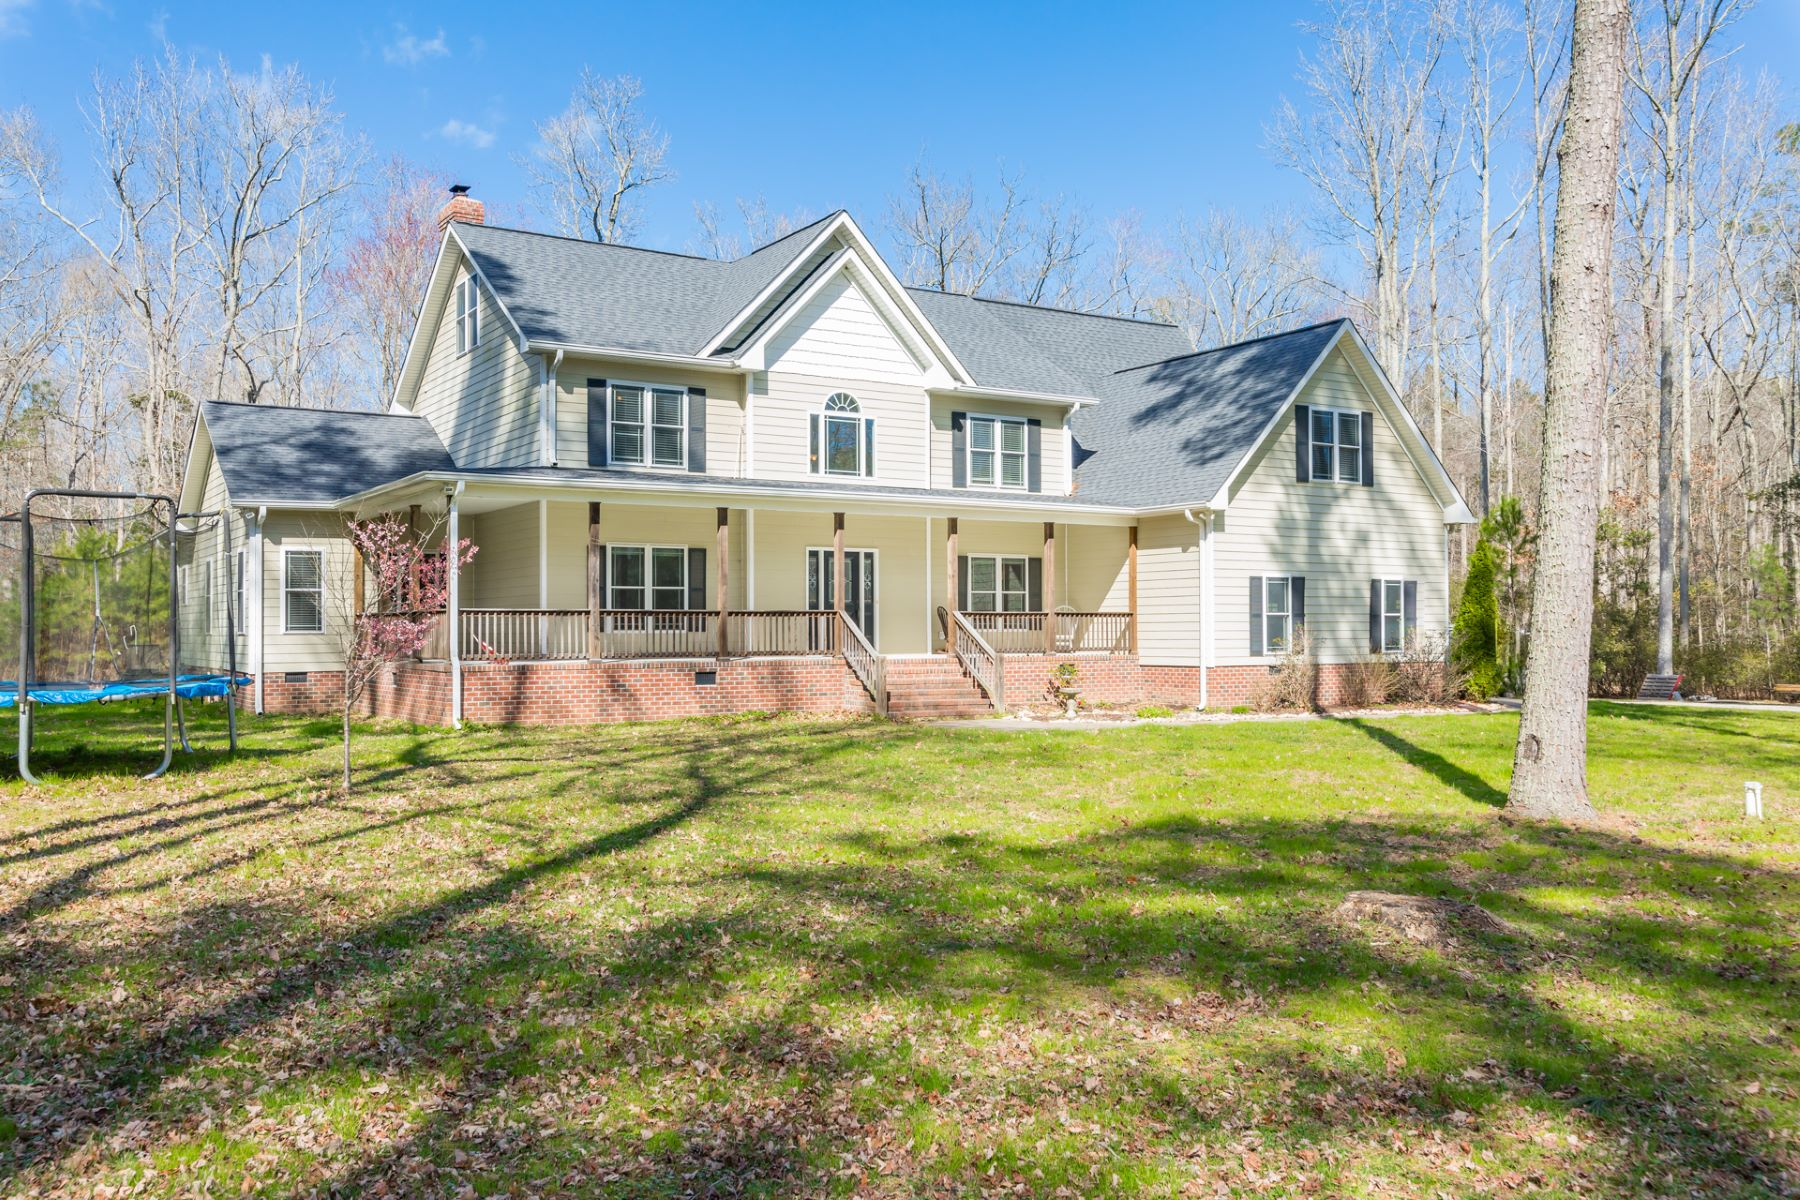 Single Family Home for Sale at 142 Lewis Drive 142 Lewis Drive, York County VA 23696, Seaford, Virginia, 23696 United States